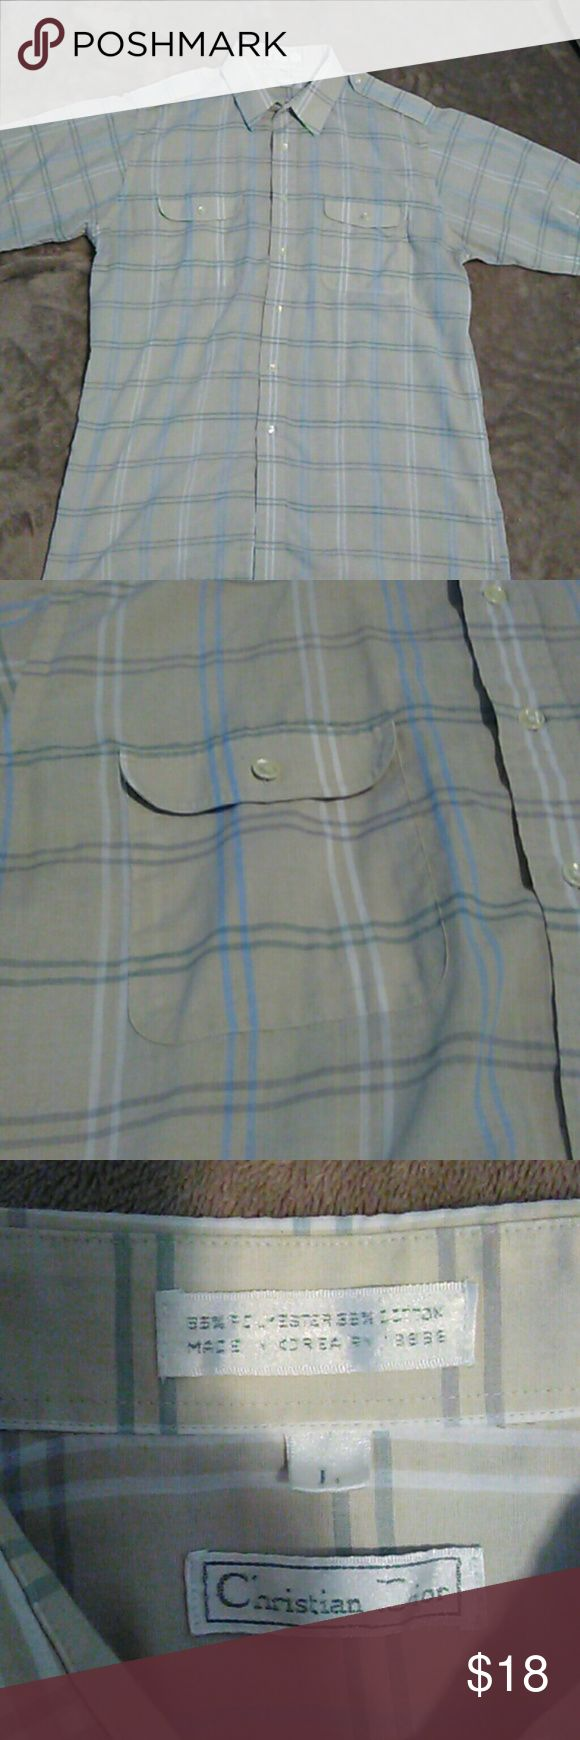 Christian Dior mens plaid button down casual shirt Christian Dior mens tan, green blue plaid button down shirt with button shoulders, front pockets. Size Large.  Gently used. Christian Dior Shirts Casual Button Down Shirts